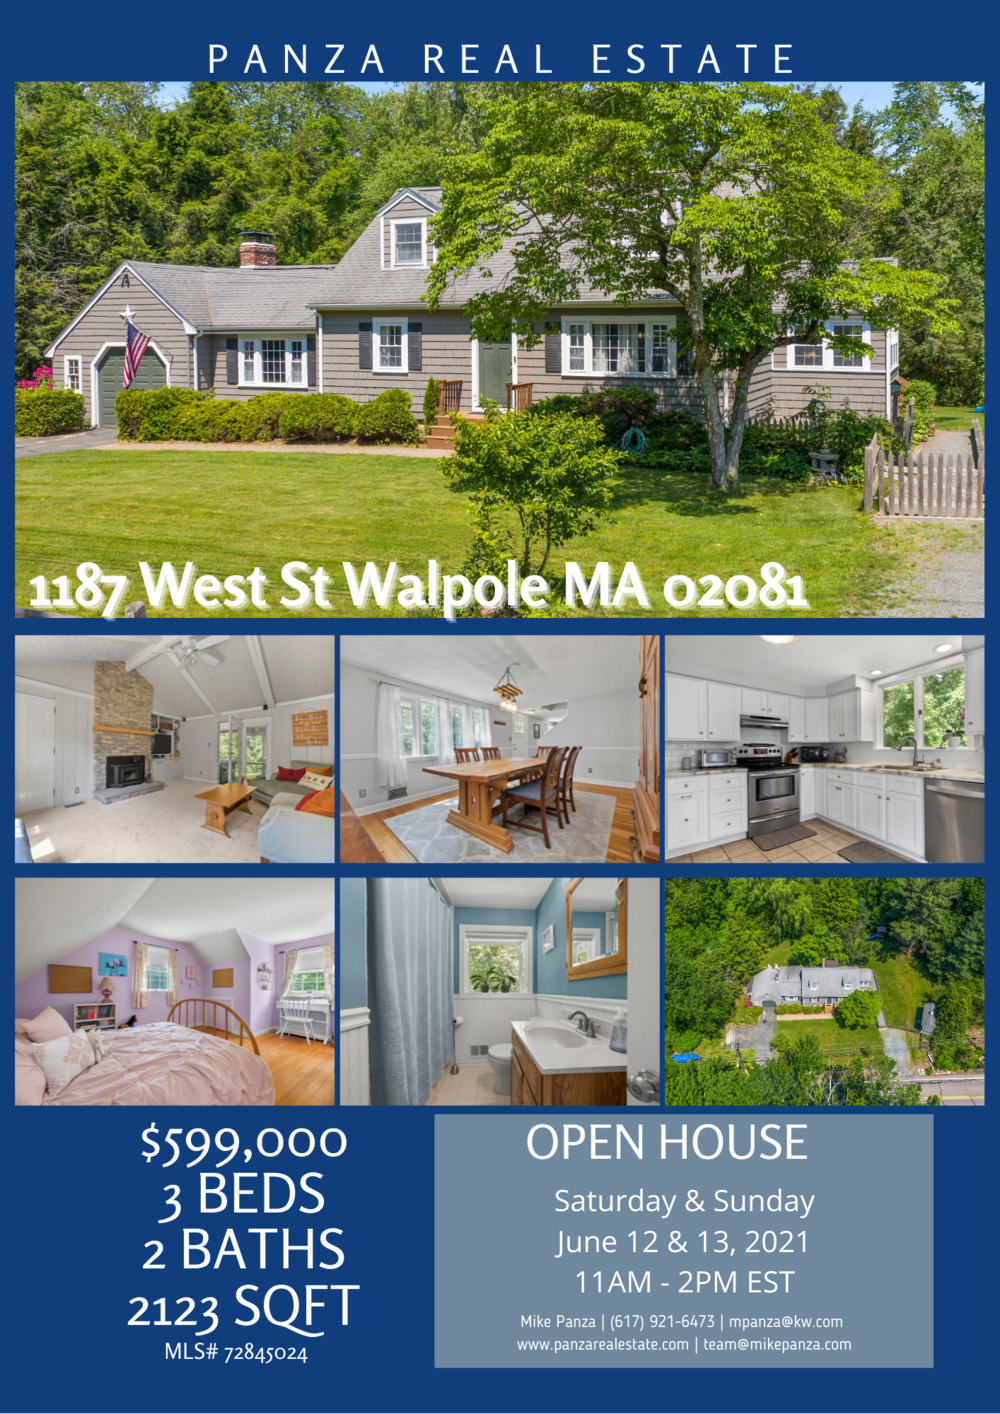 OH Flyer - 1187 West St Walpole MA 02081.png